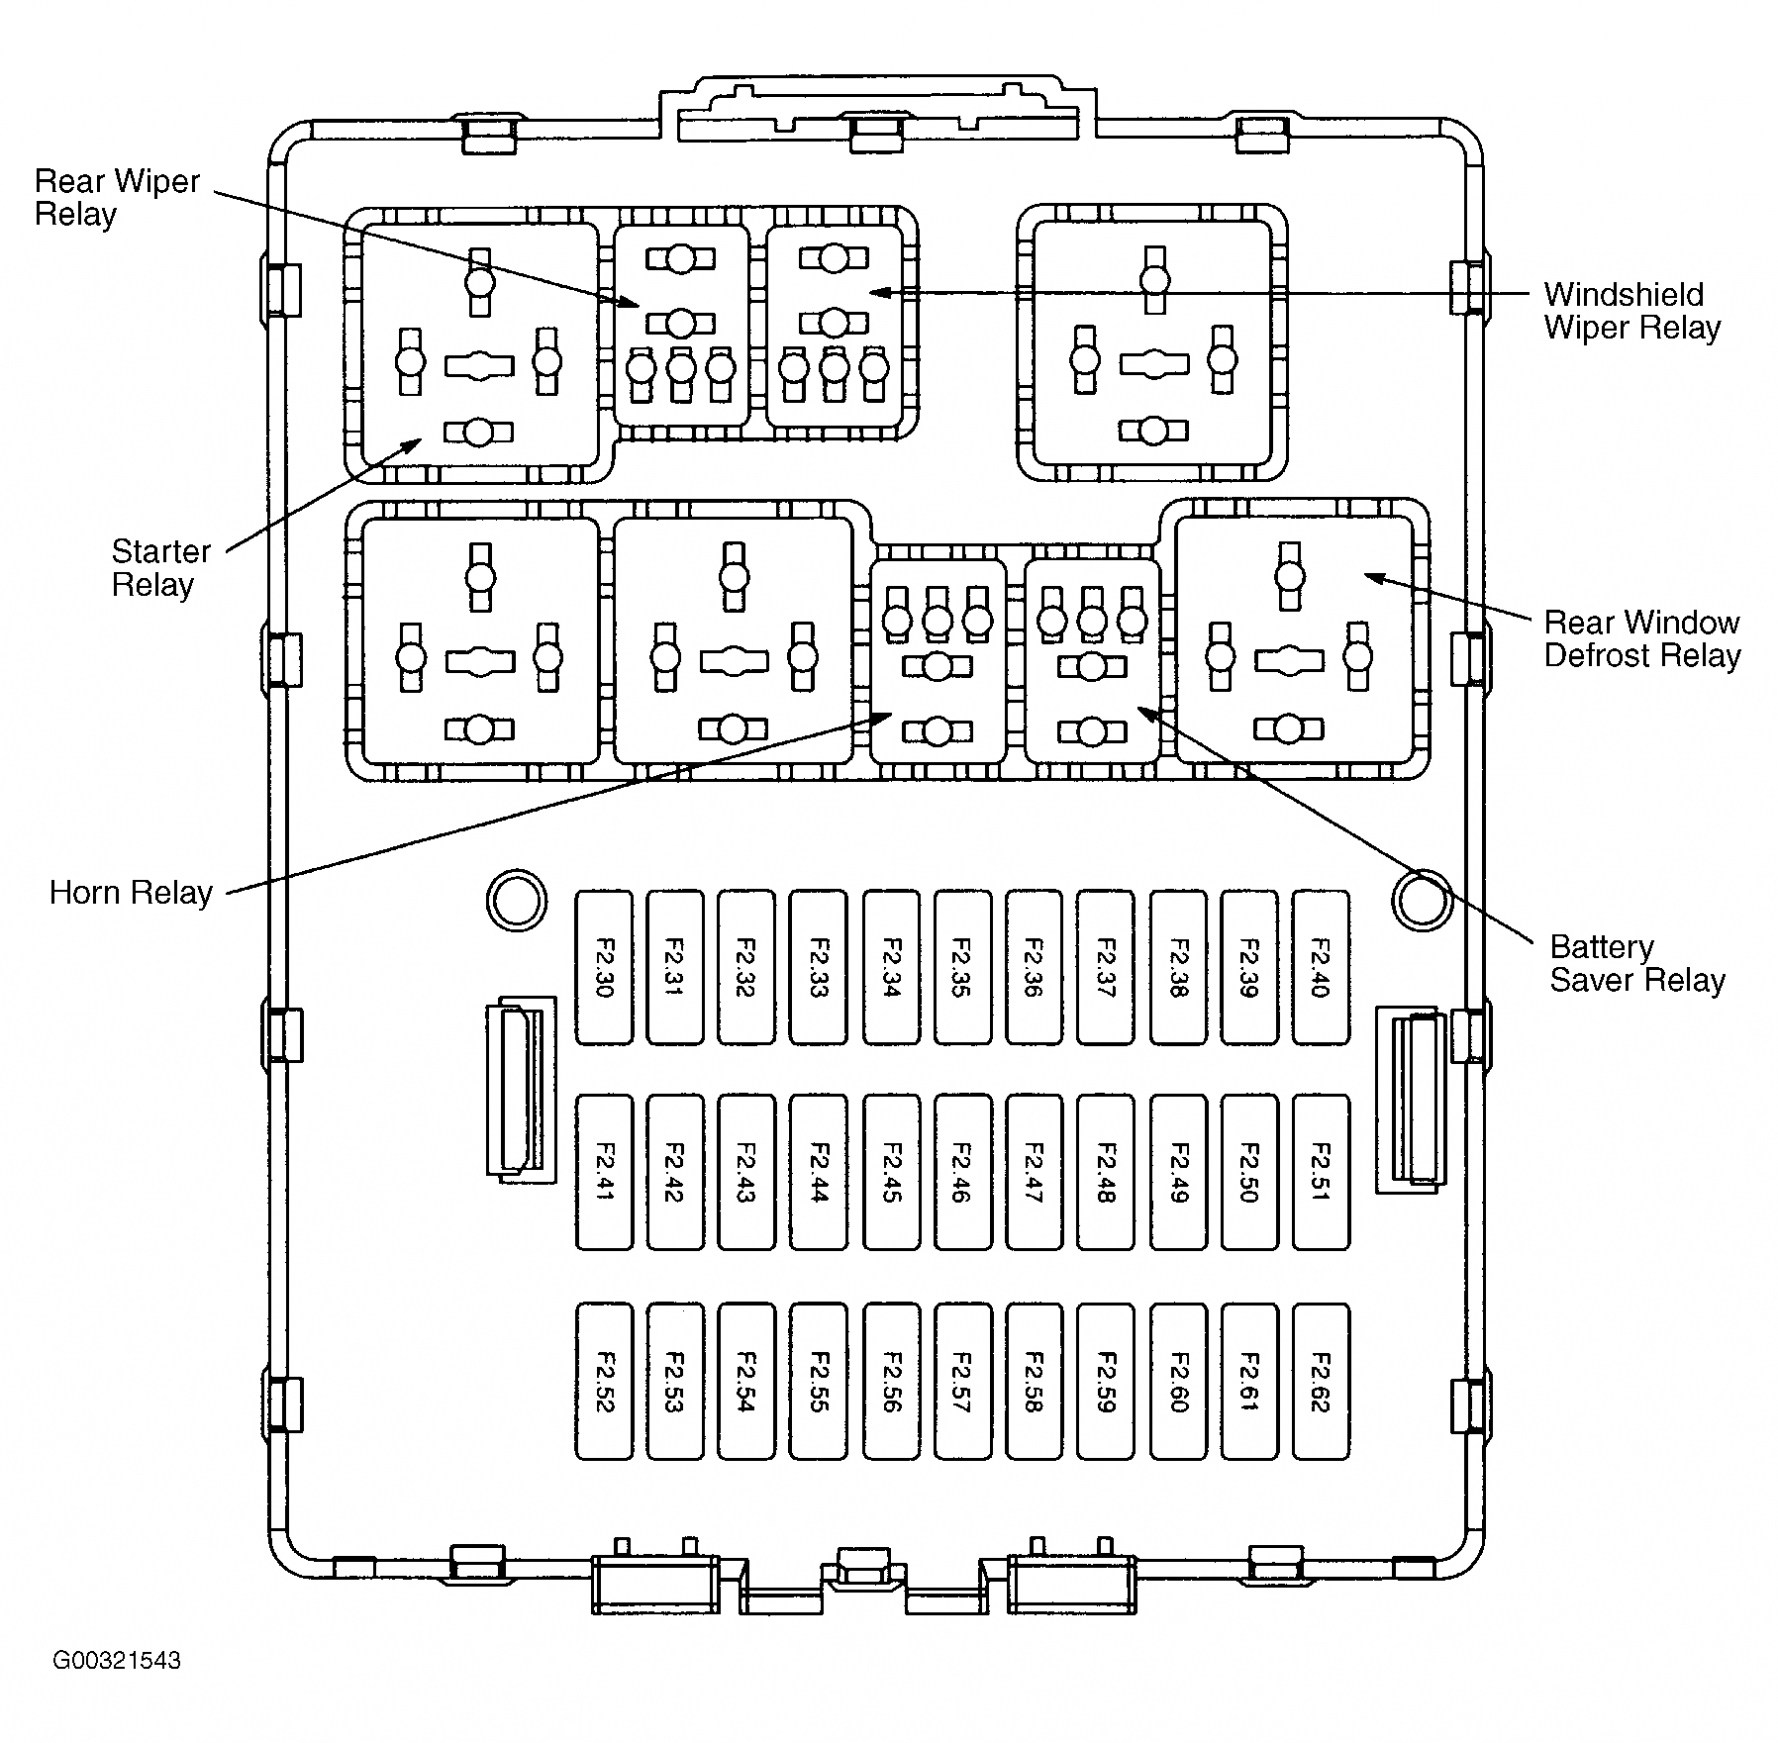 2002 Ford Focus Fuse Box Diagram 2002 Ford Focus Cooling Fan Diagram 2002 Ford Focus Wiring Wiring